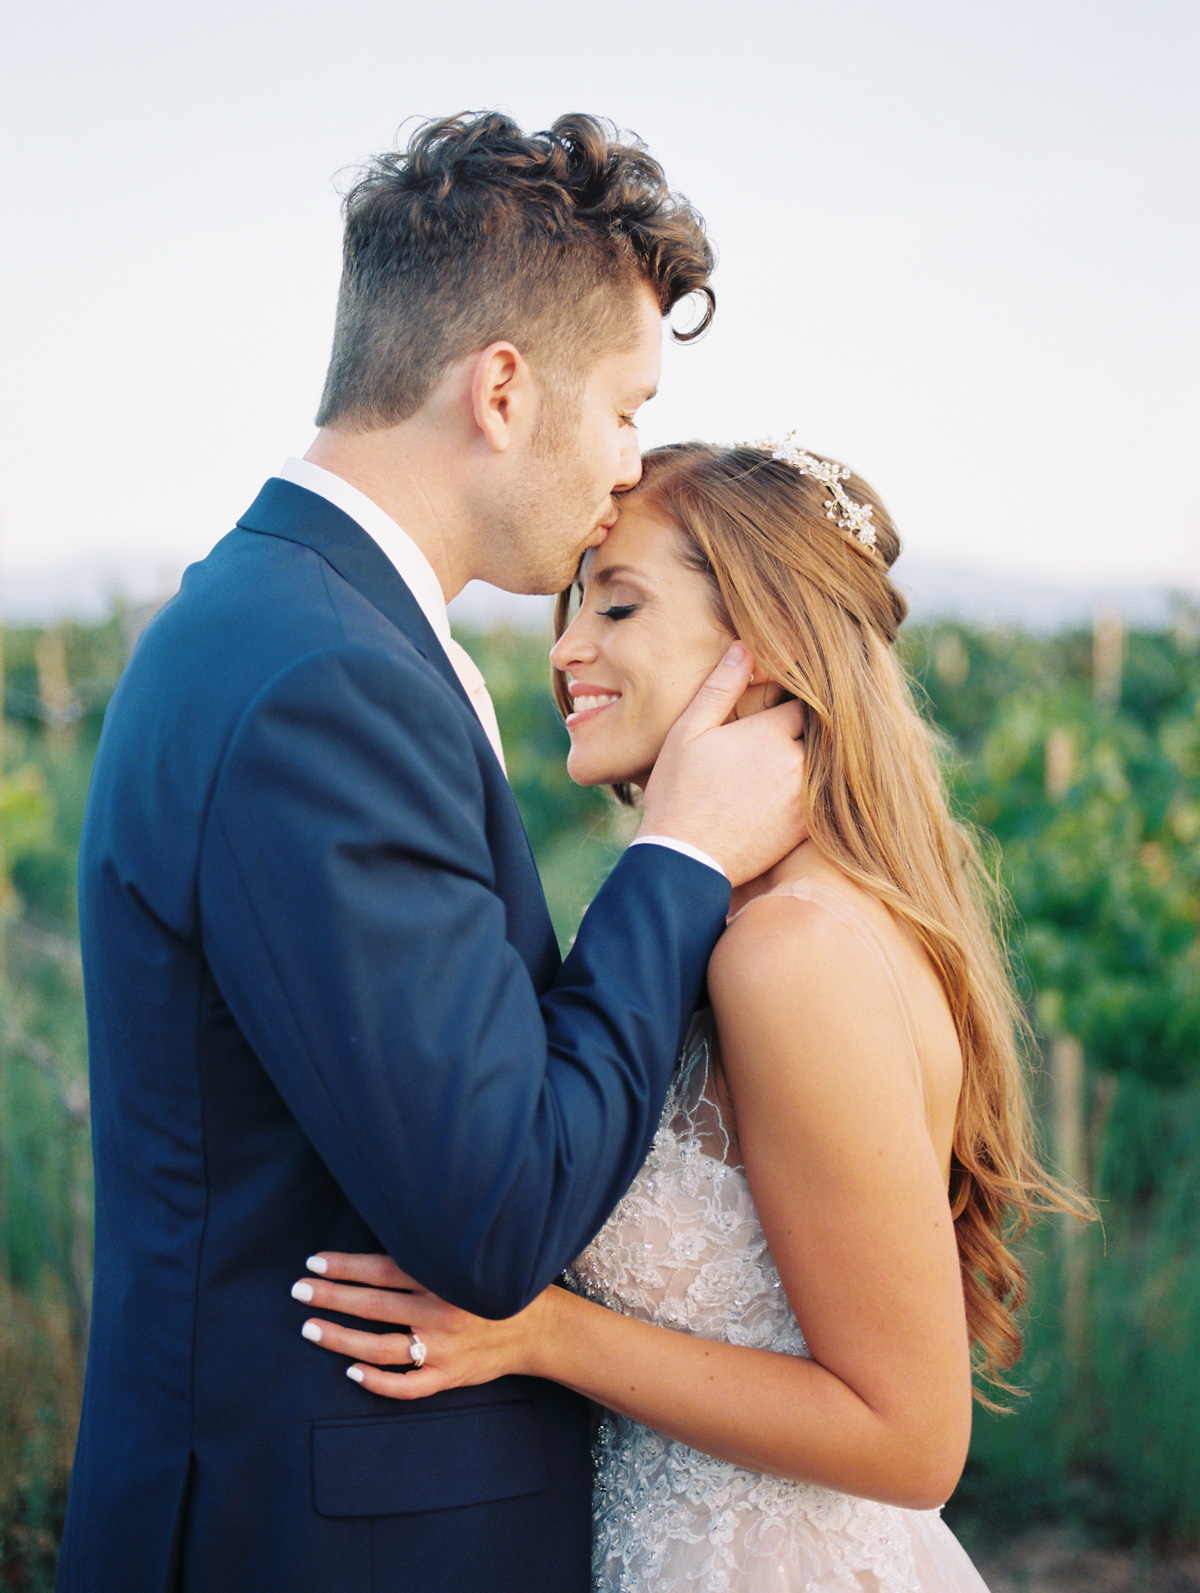 Groom kissing bride on the head, redhead bride smiling  Harrison & Jocelyne's gorgeous Temecula wedding day at Wiens Family Cellars captured by Temecula wedding photographers Betsy & John